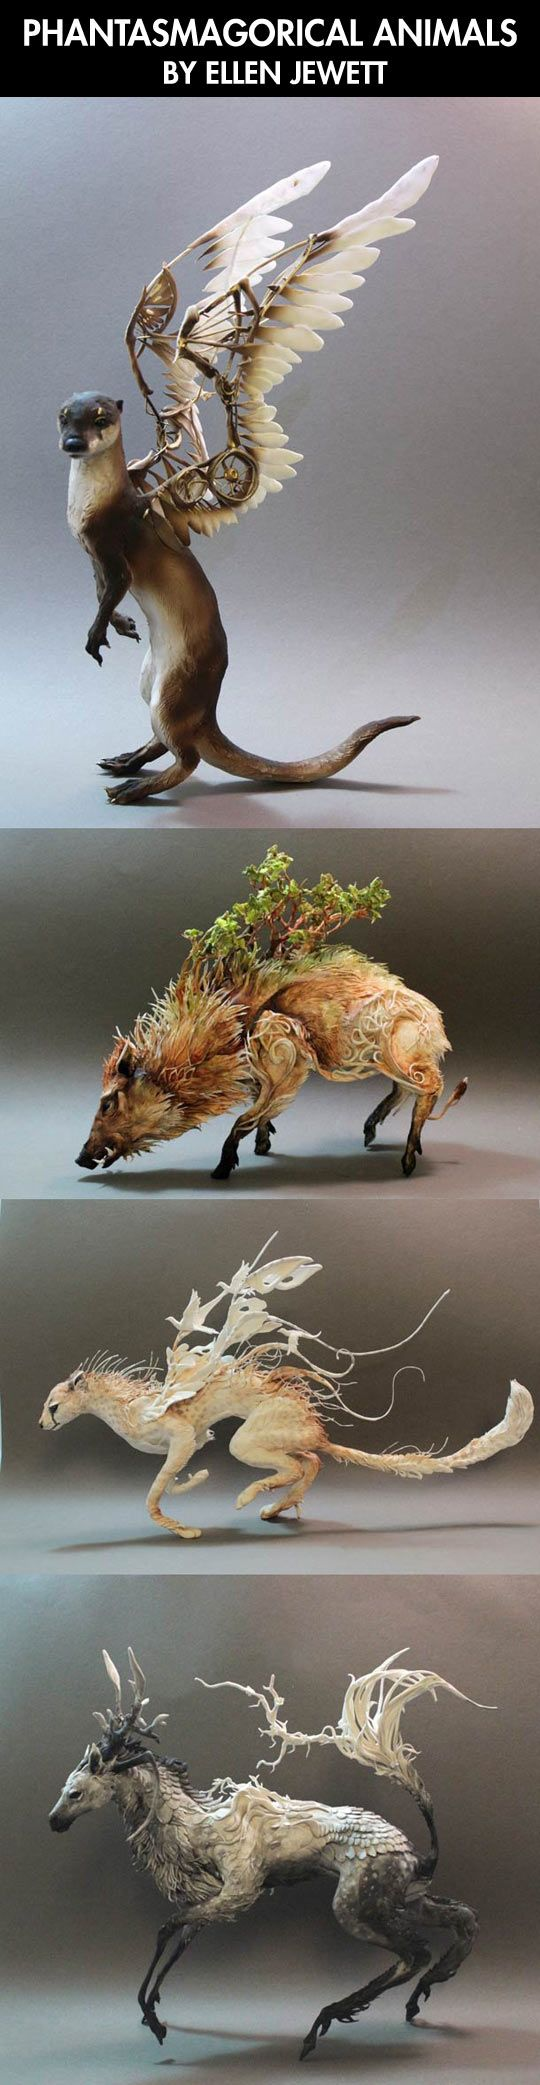 手机壳定制gently used clothing for sale online Amazing animal sculpture art  click for more